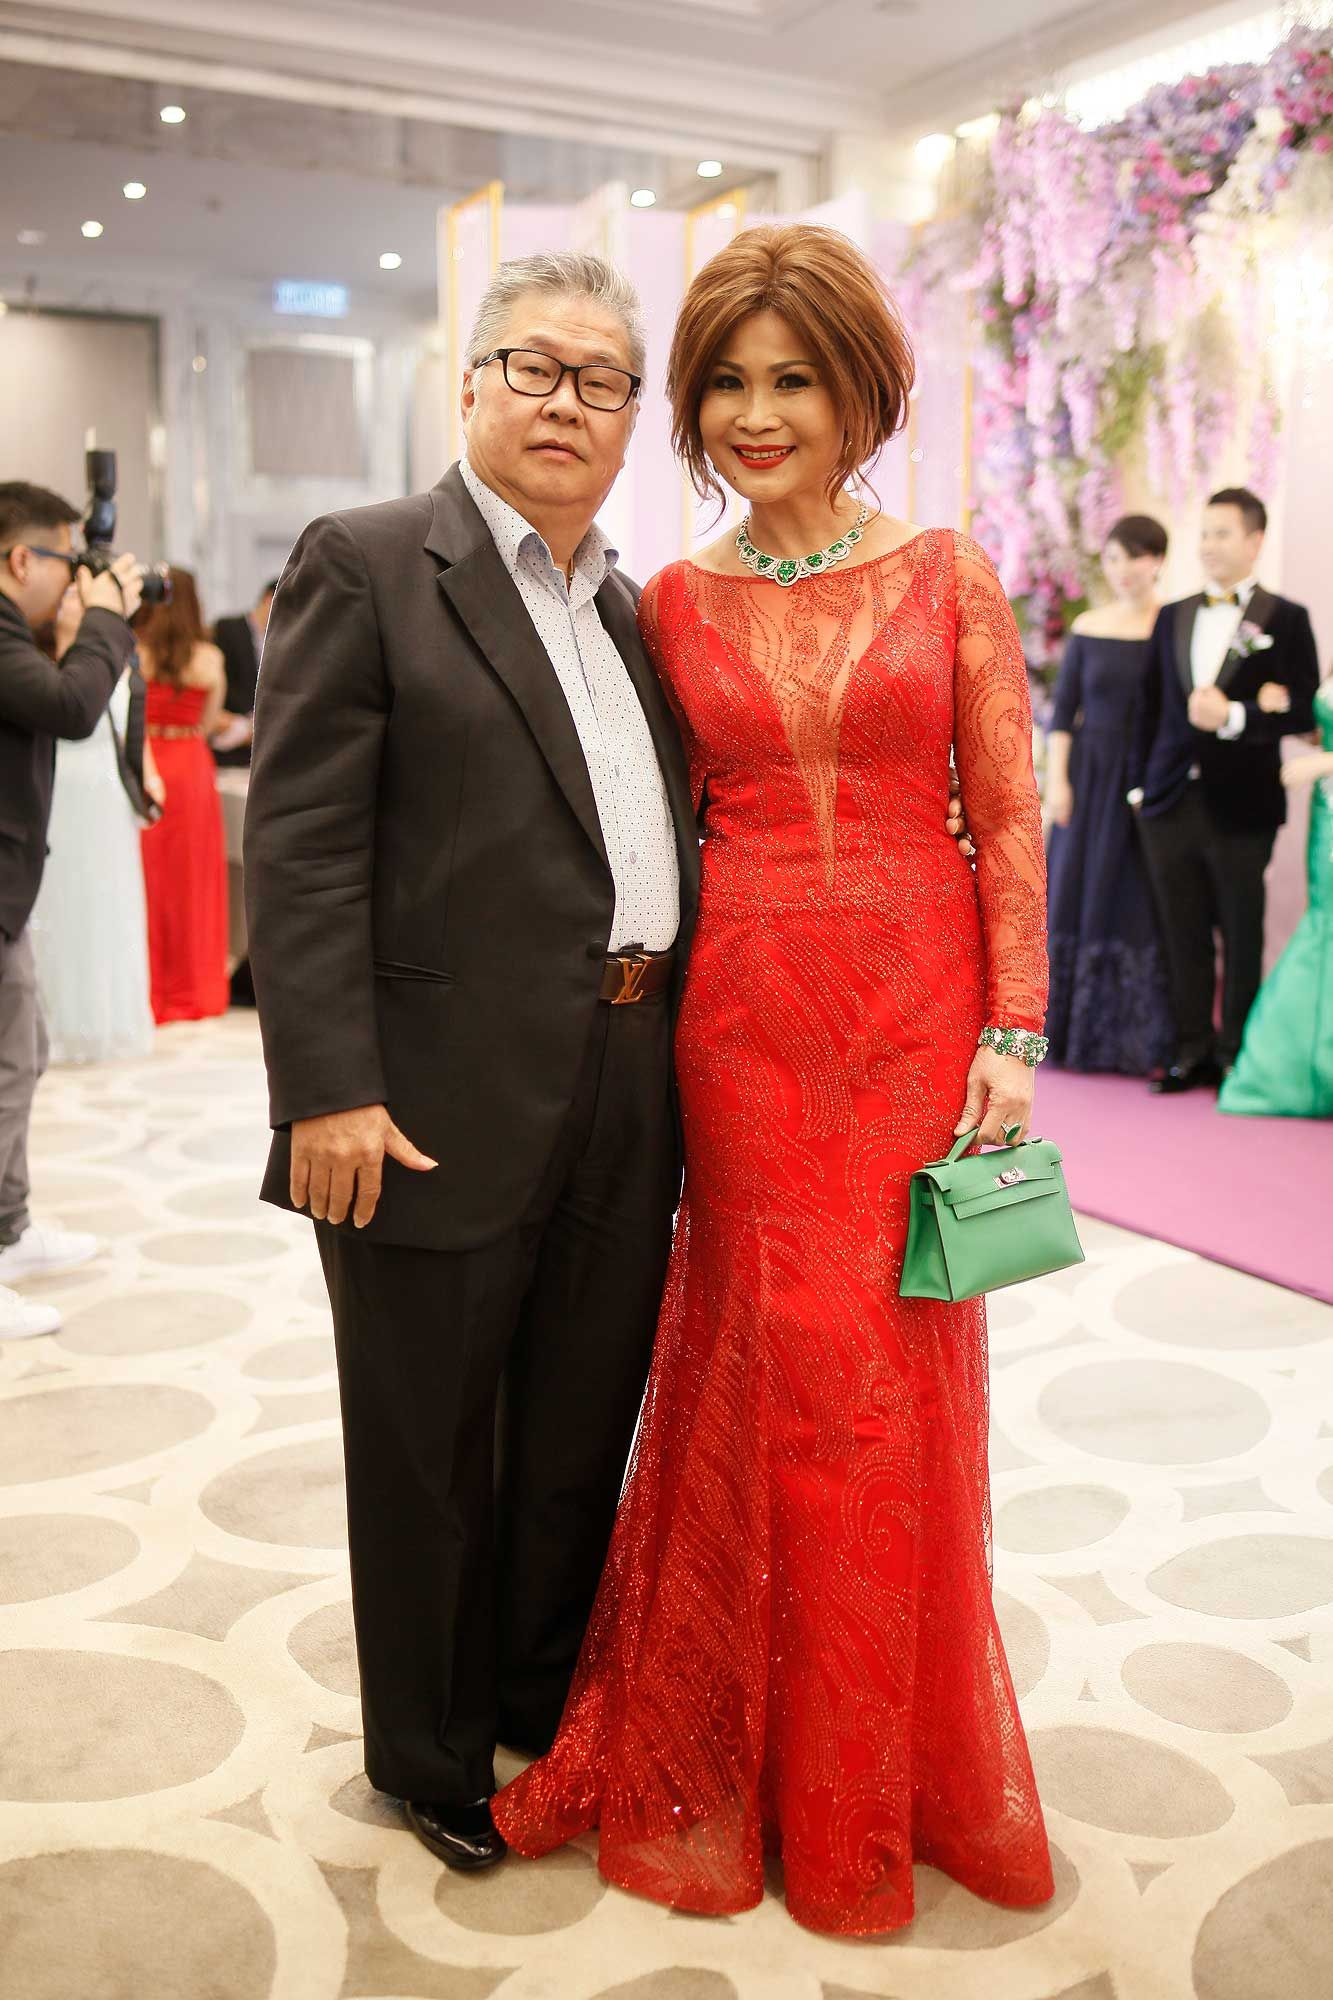 Dato' YK Lee and Datin Kelly Chen